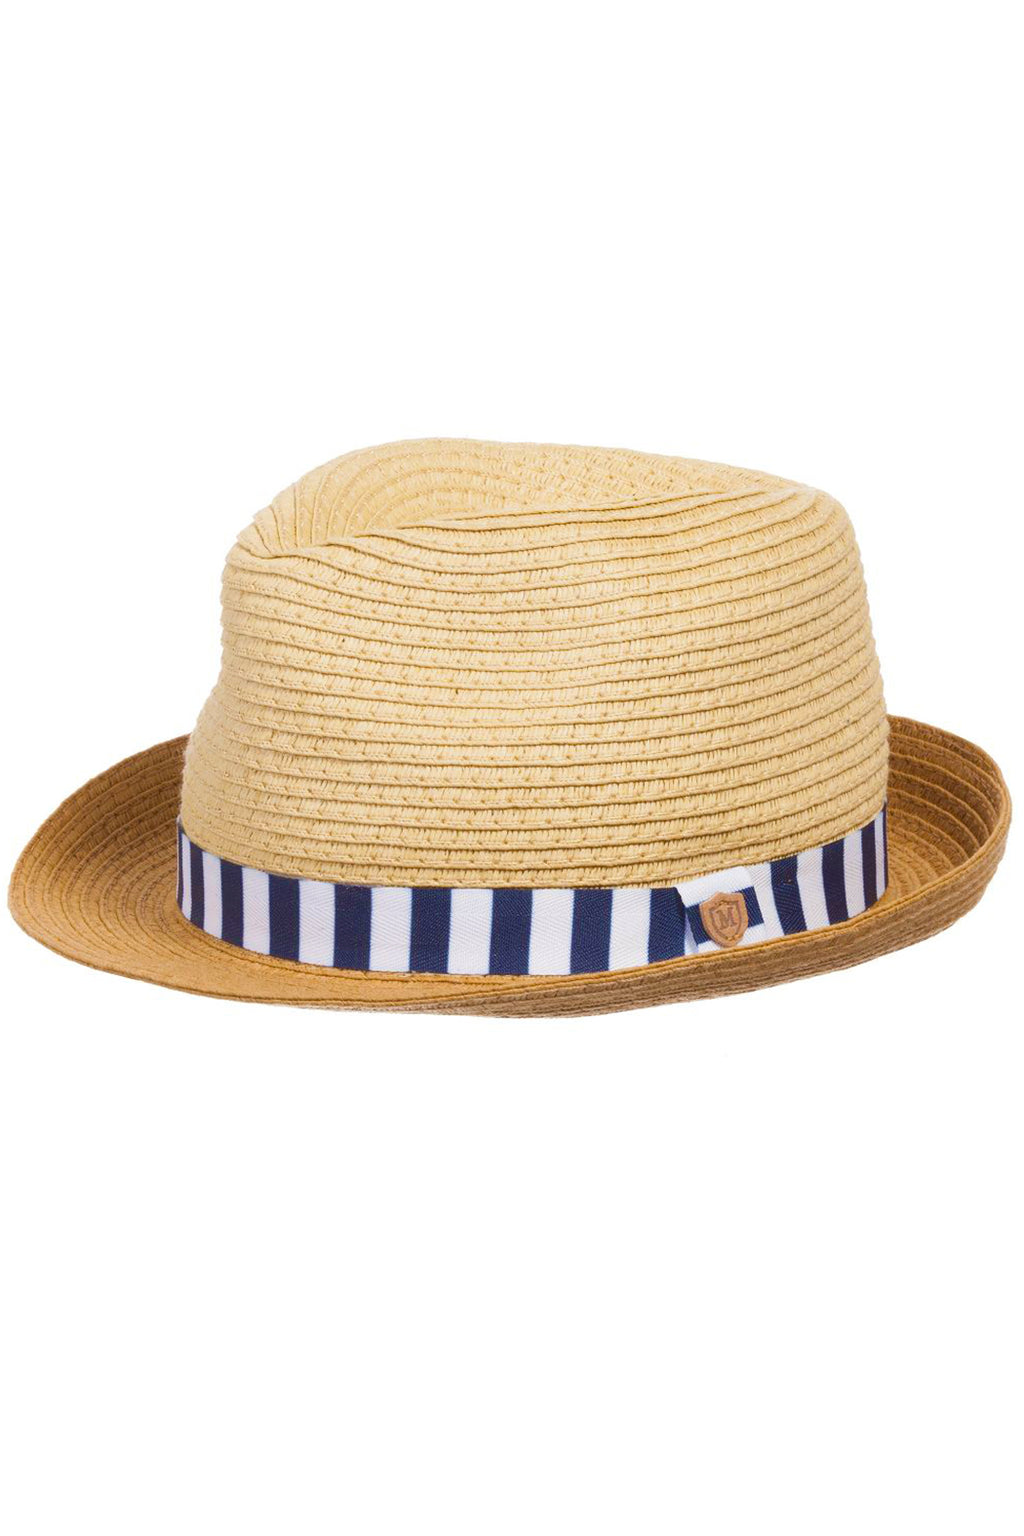 Mayoral - Straw Hat w/ Navy Stripe Trim - kkgivingtree - K&K's Giving Tree